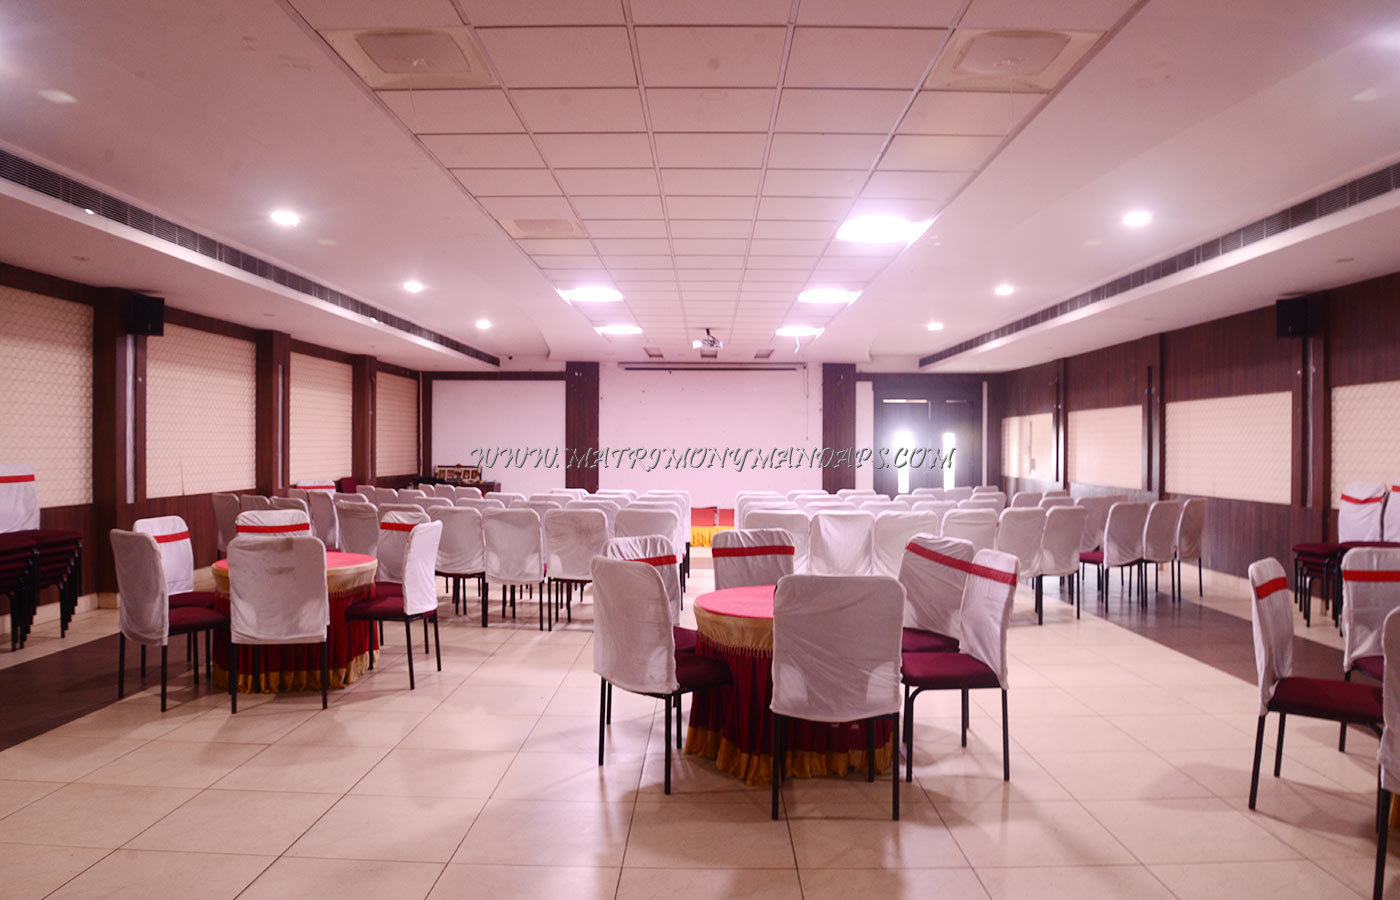 Find the availability of the SMS Hotel Hall 1 (A/C) in Peelamedu, Coimbatore and avail special offers